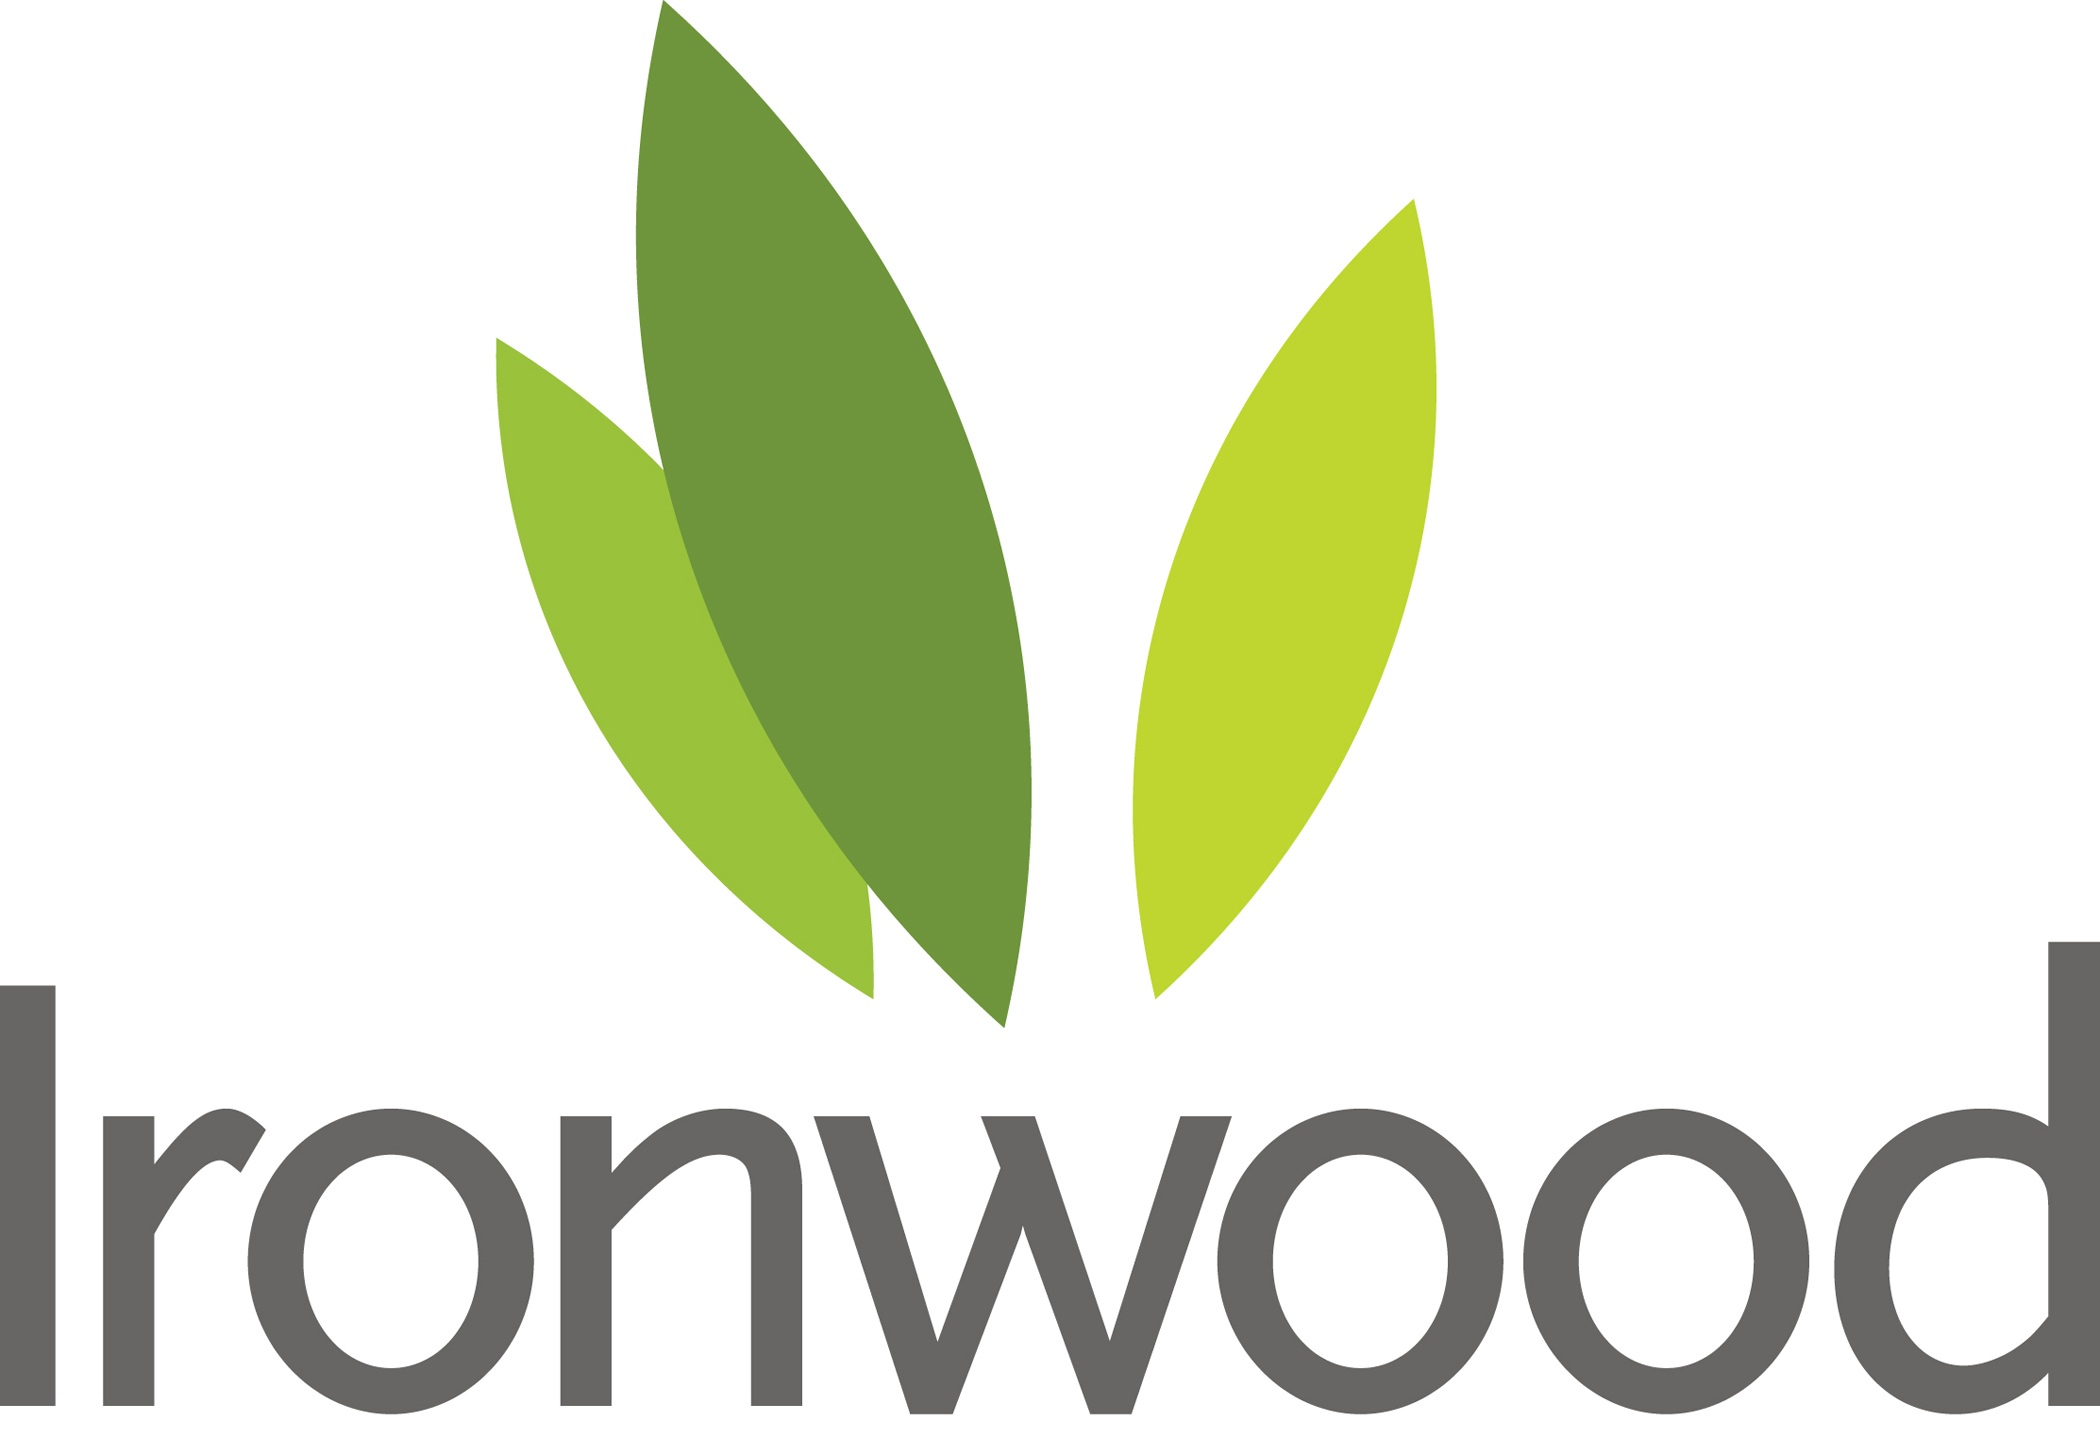 IRONWOOD_LOGO.jpg